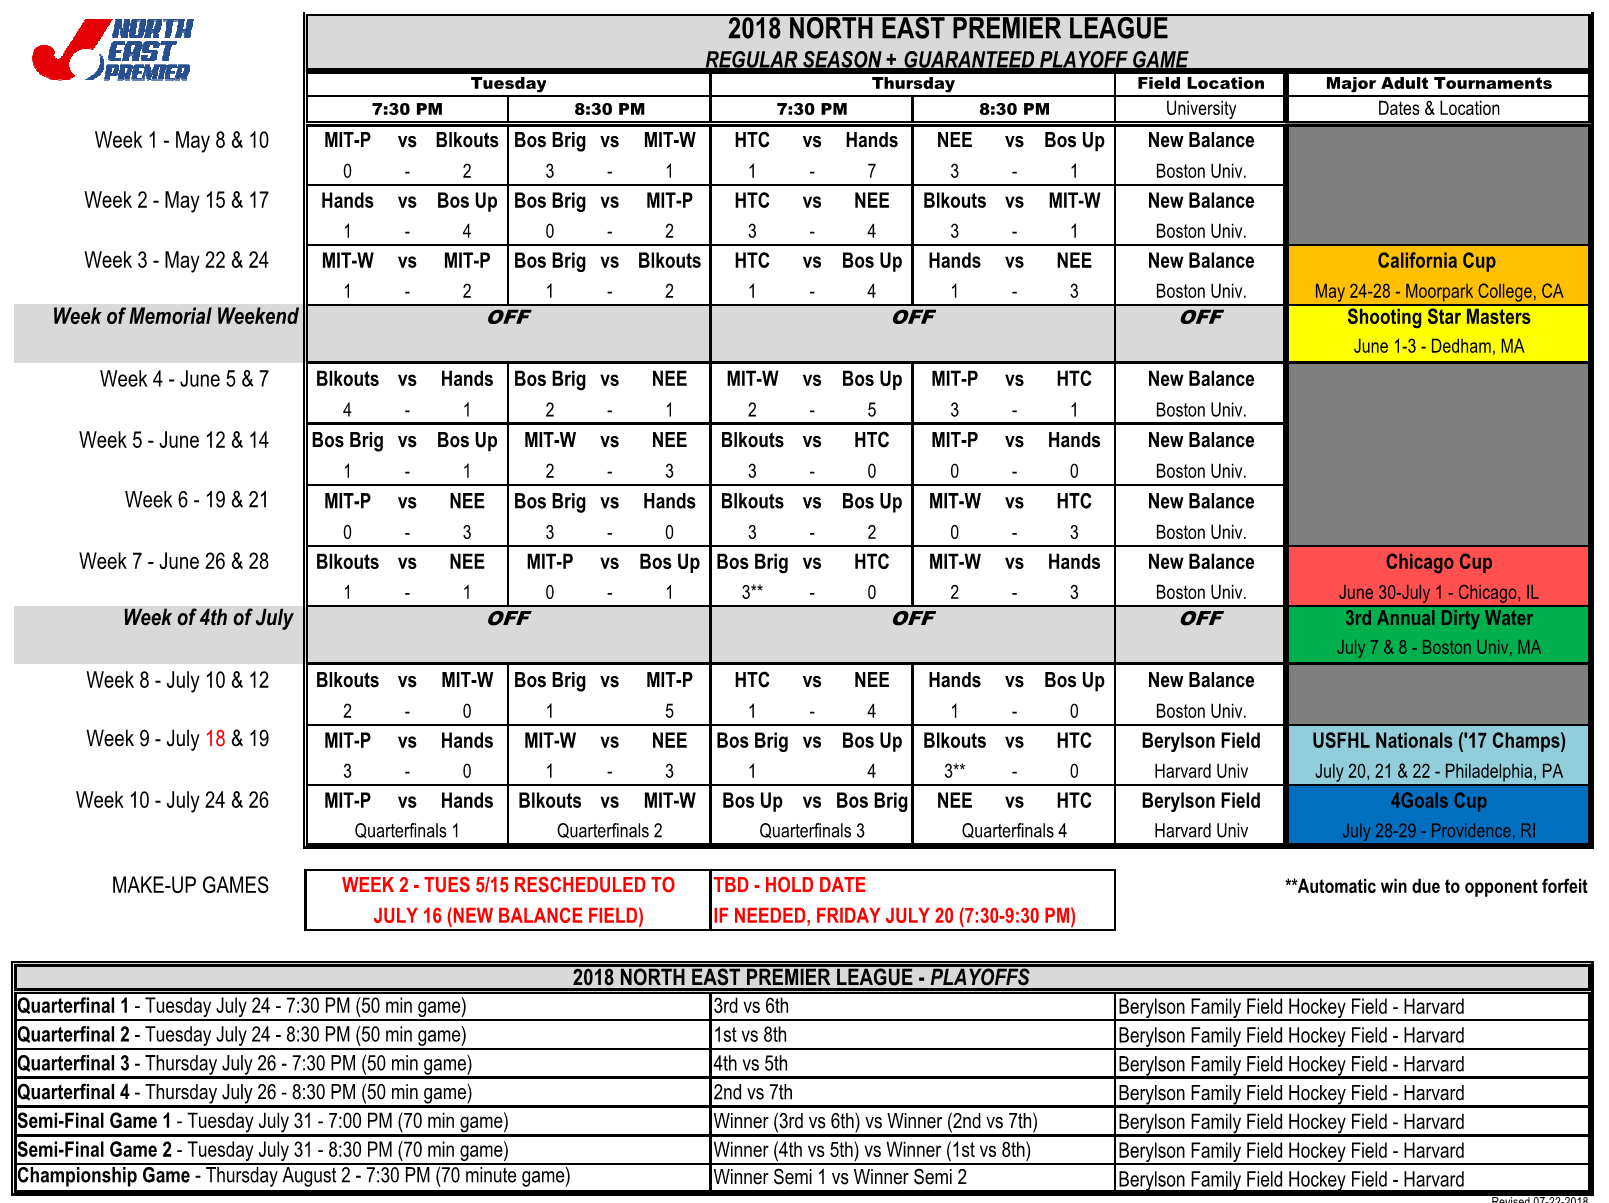 NEPL 2018 - Schedule & Standings & Points_07-22-18.png